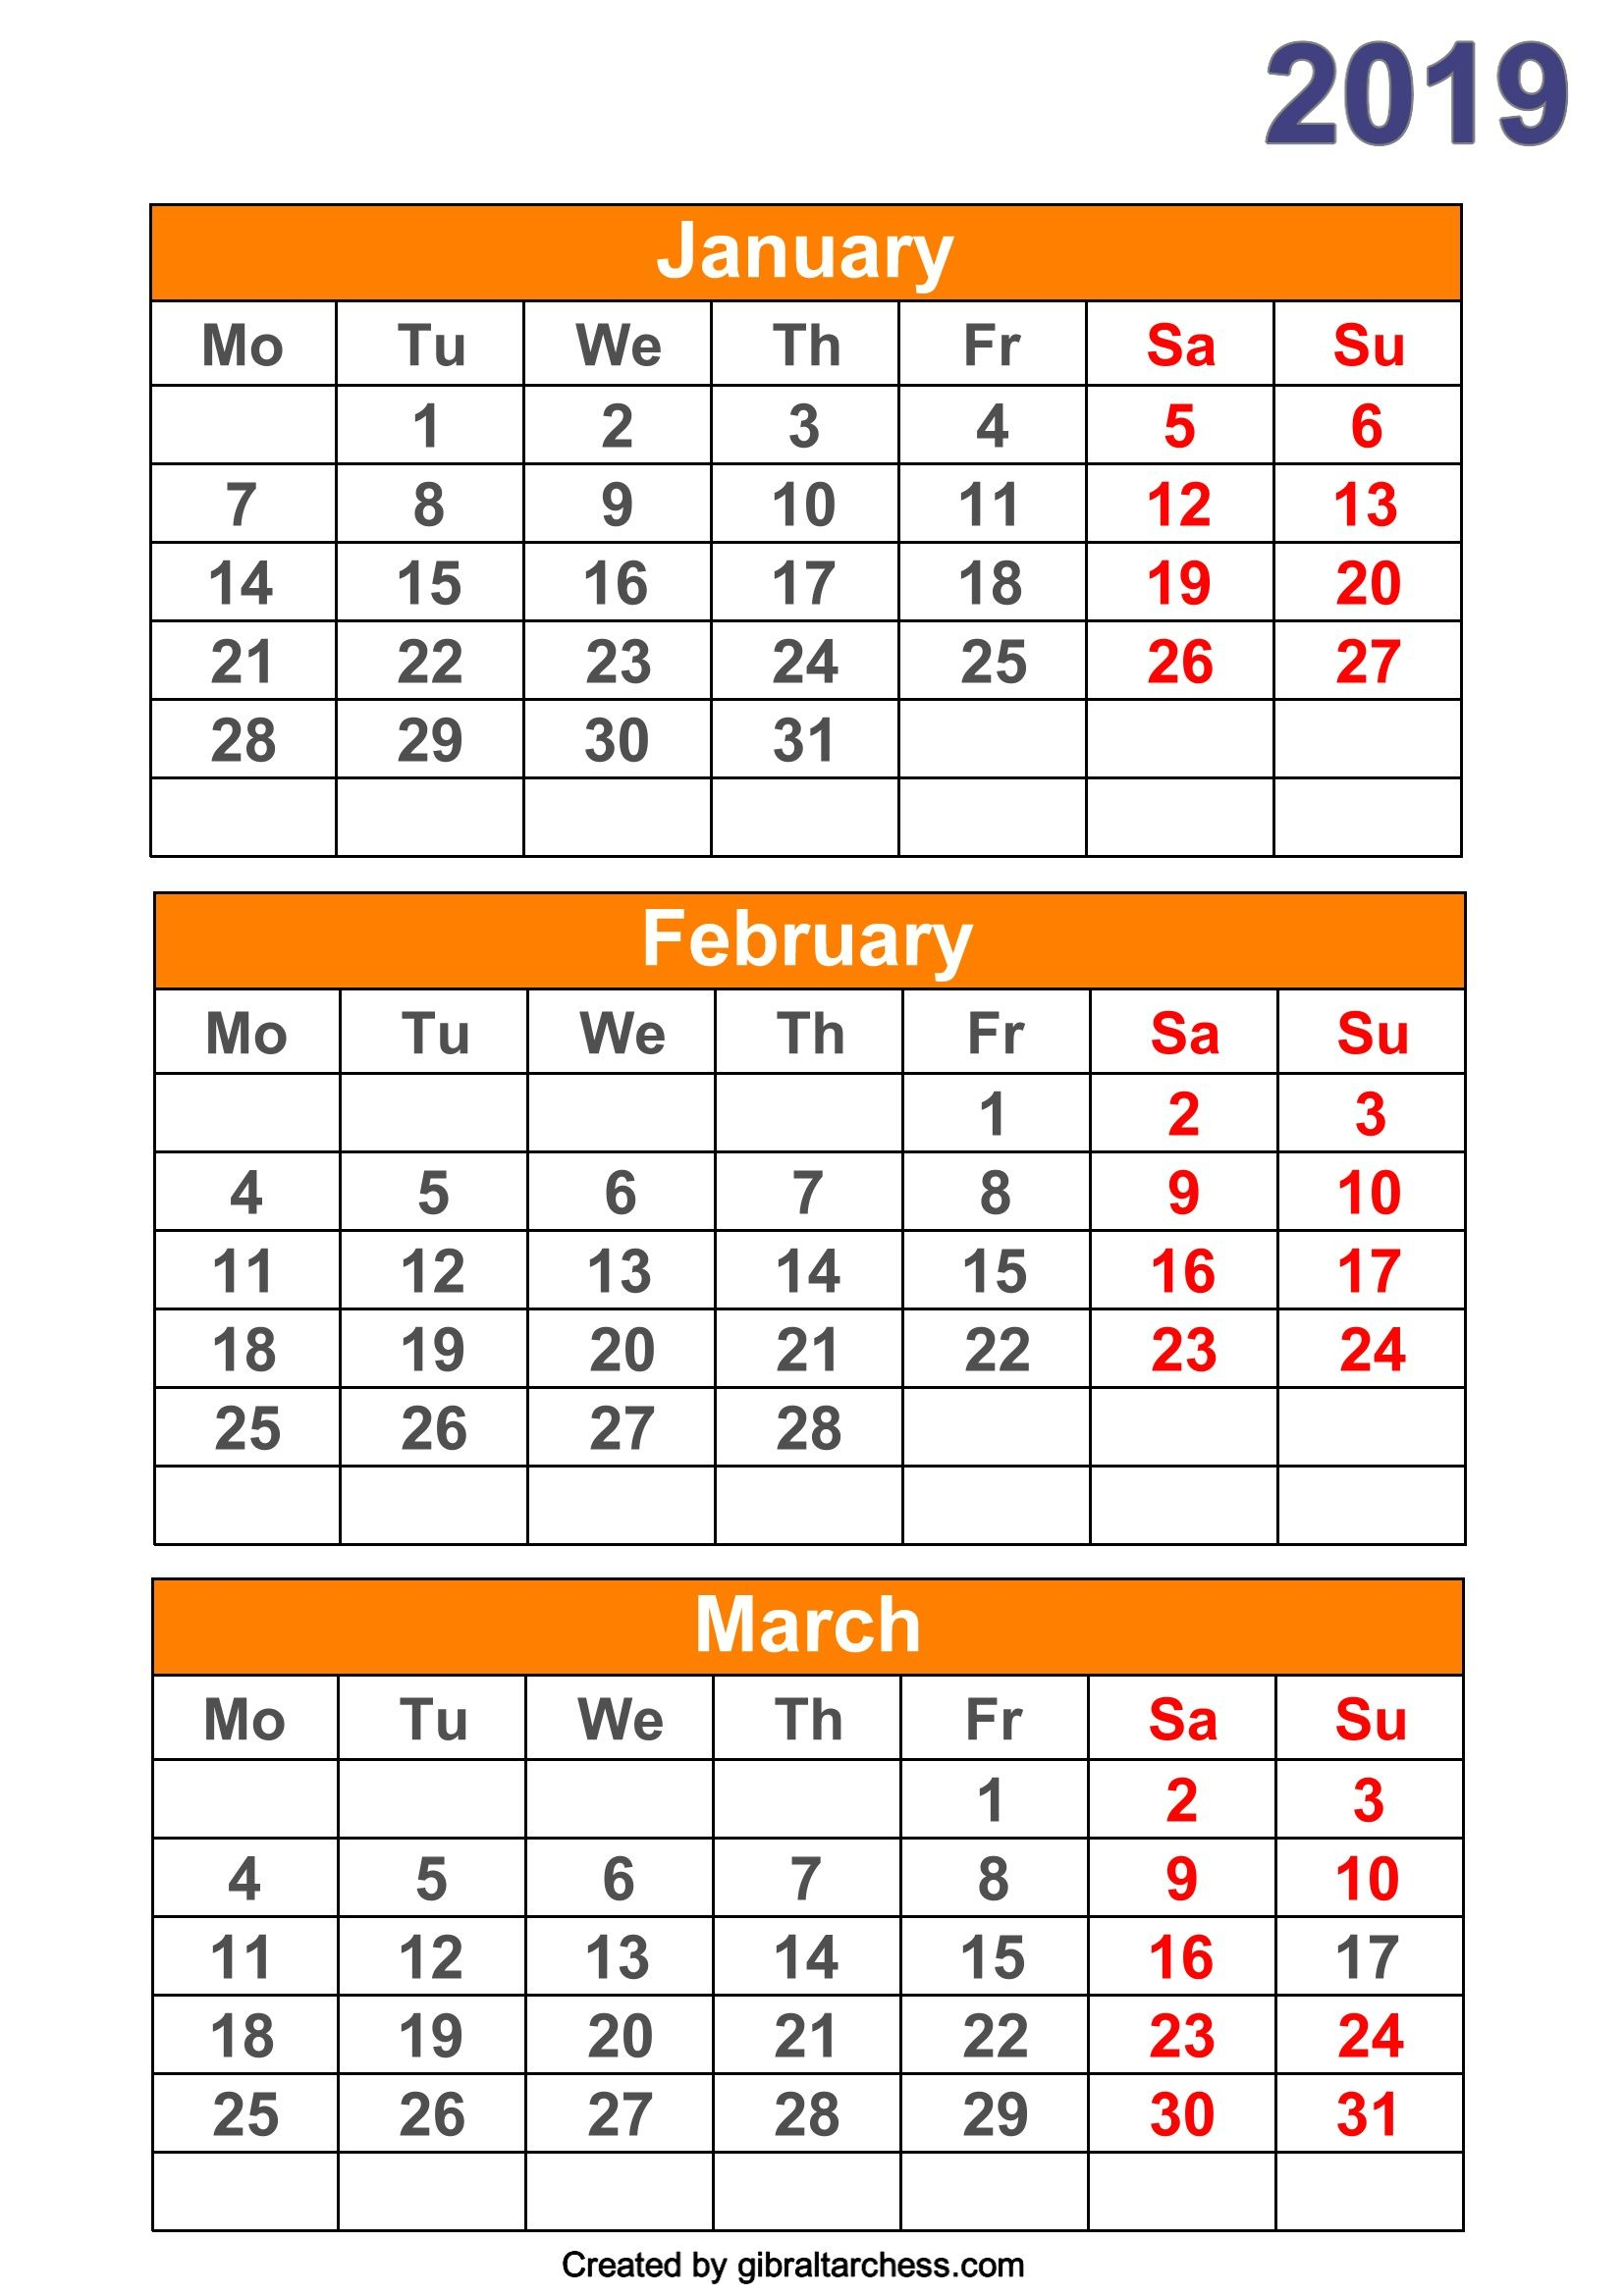 2019 Calendar 4 Months Per Page Printable within Printable 4 Month Calendar